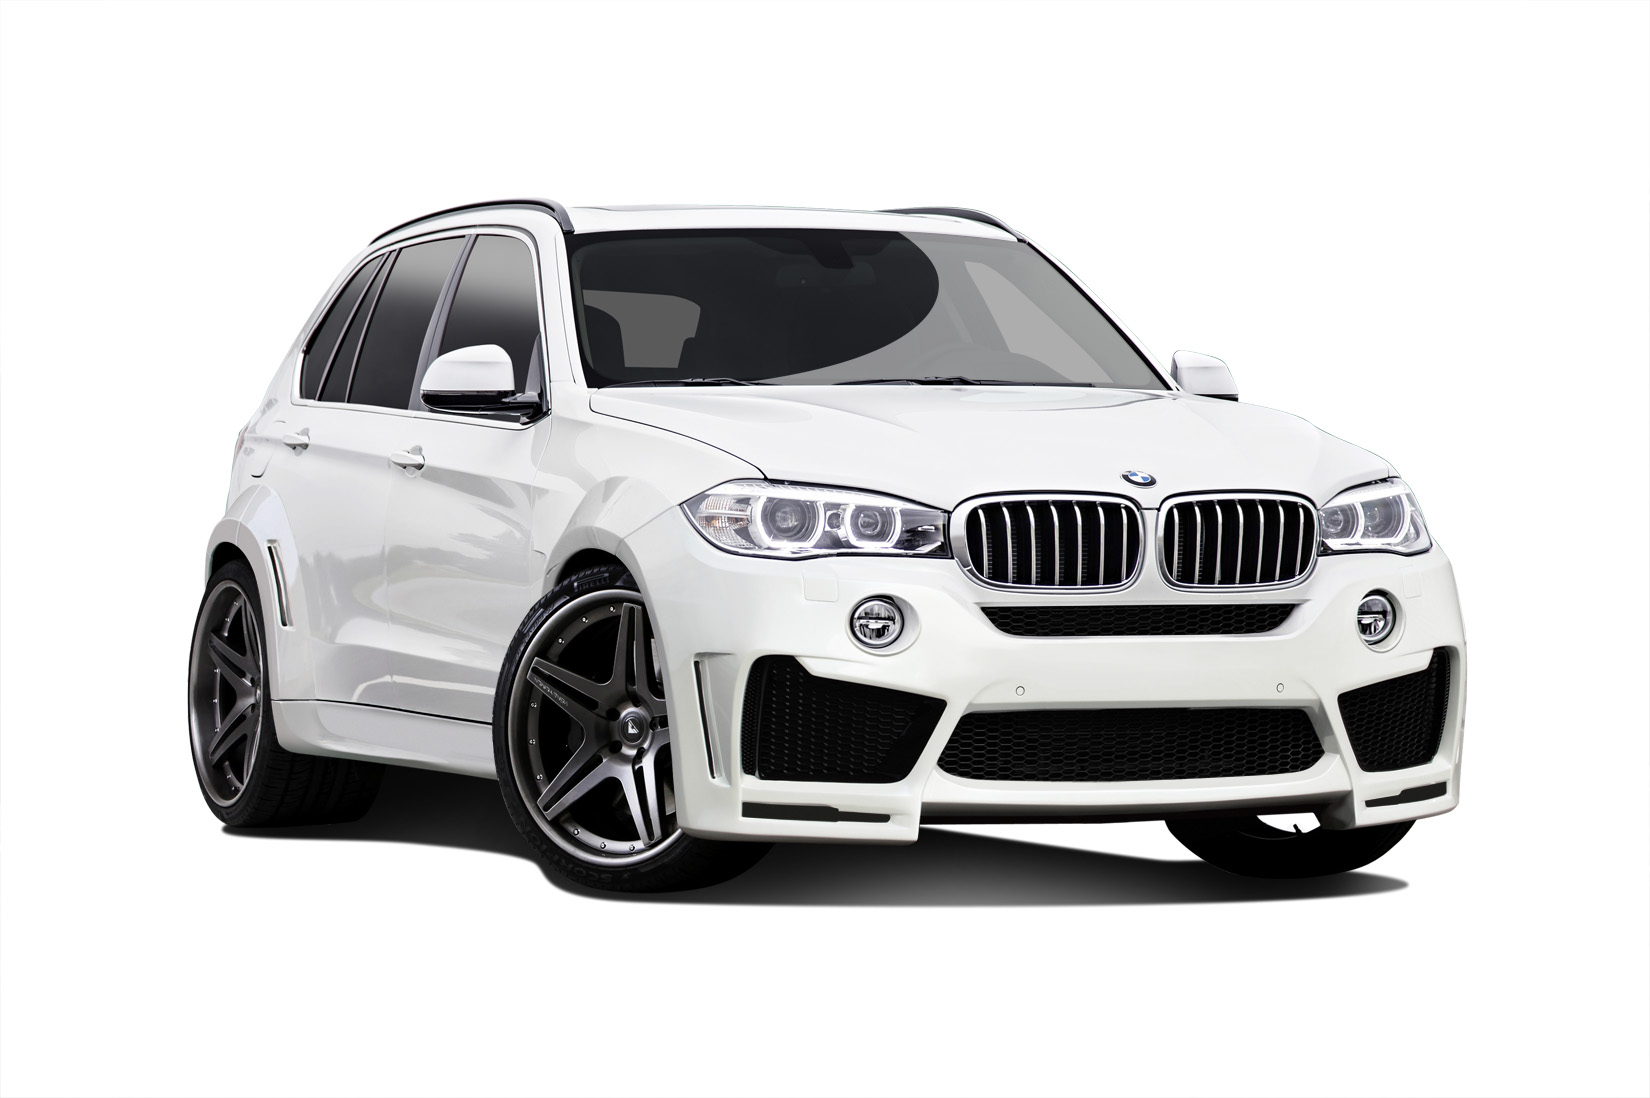 kit body kit for 2015 bmw x5 2014 2015 bmw x5 f15 carbon af 1 wide body kit gfk pur rim. Black Bedroom Furniture Sets. Home Design Ideas